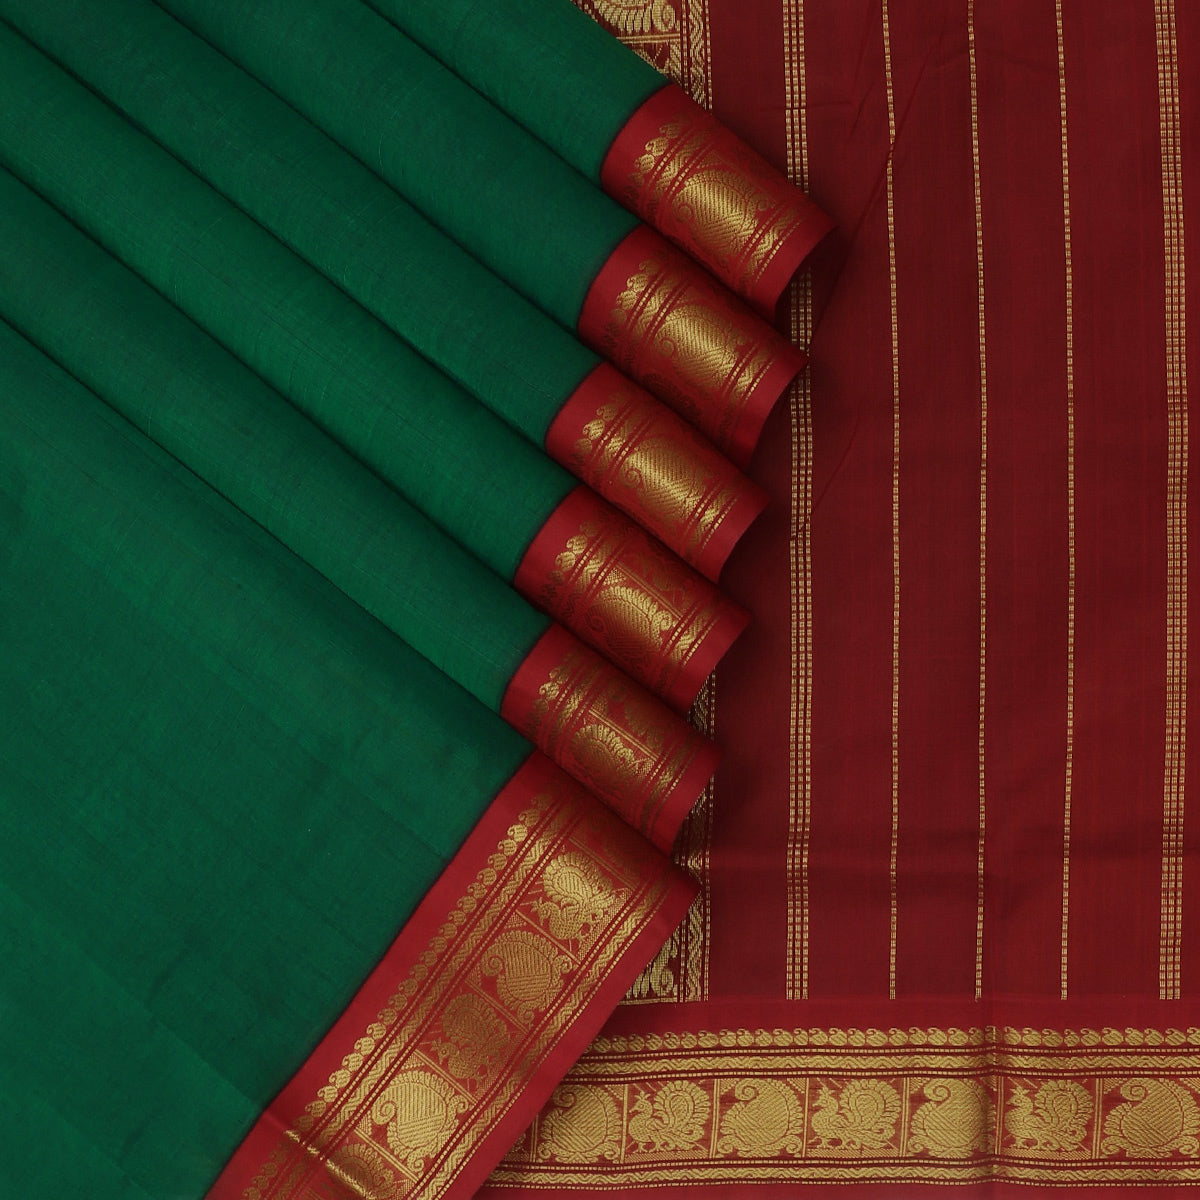 Silk Cotton Saree Dark Green and Maroon with Annam and Mango Zari Border Korvai